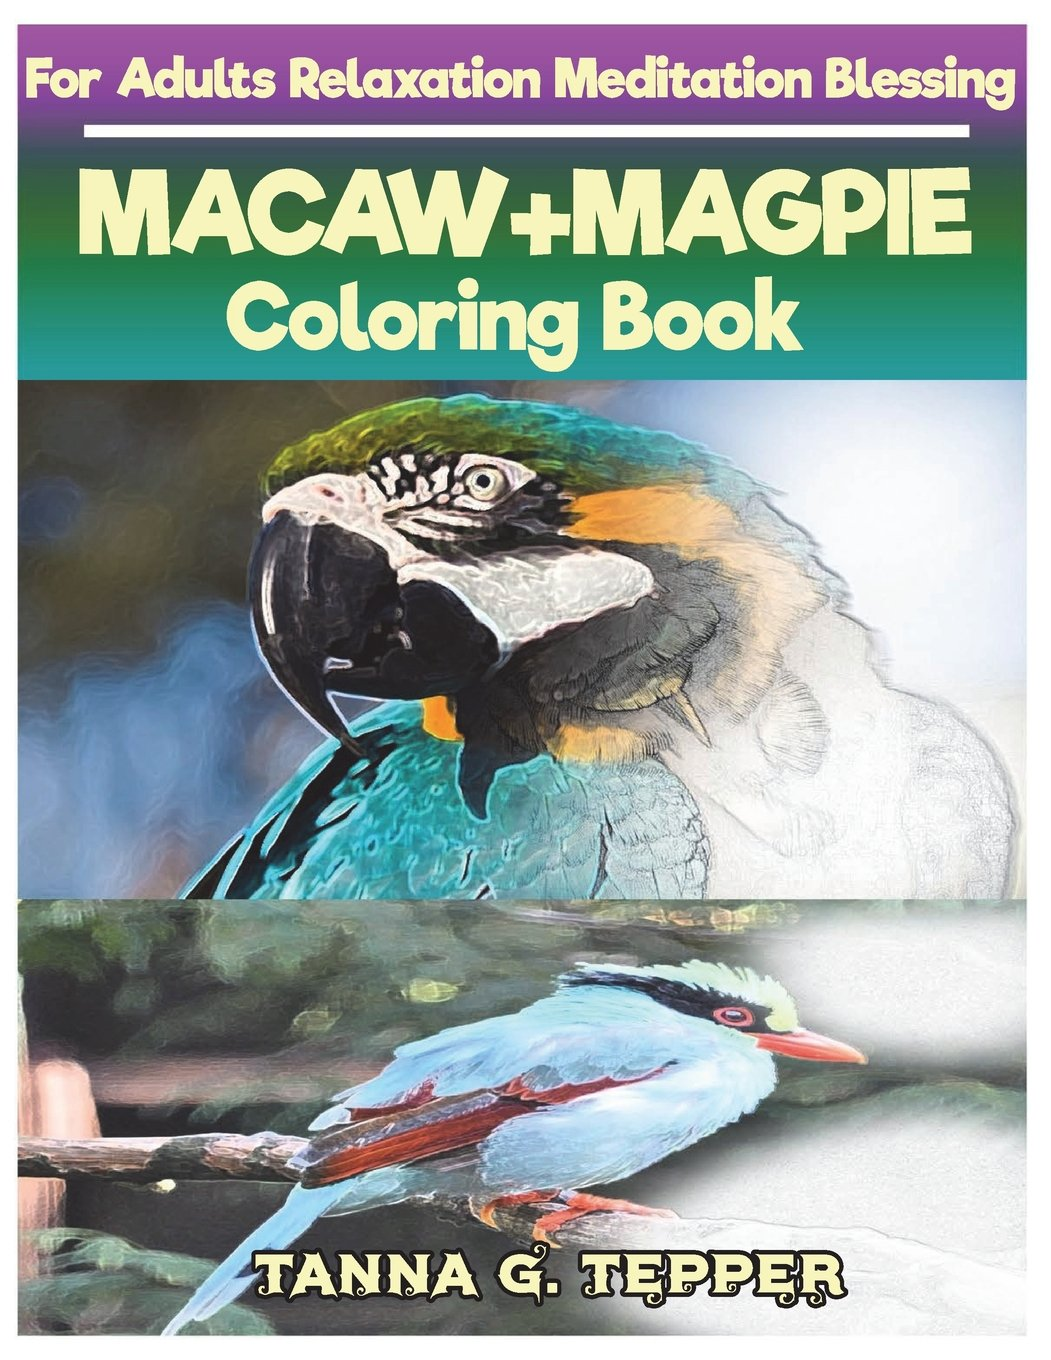 Read Online MACAW+MAGPIE Coloring book for Adults Relaxation Meditation Blessing: Sketch coloring book Grayscale Pictures pdf epub